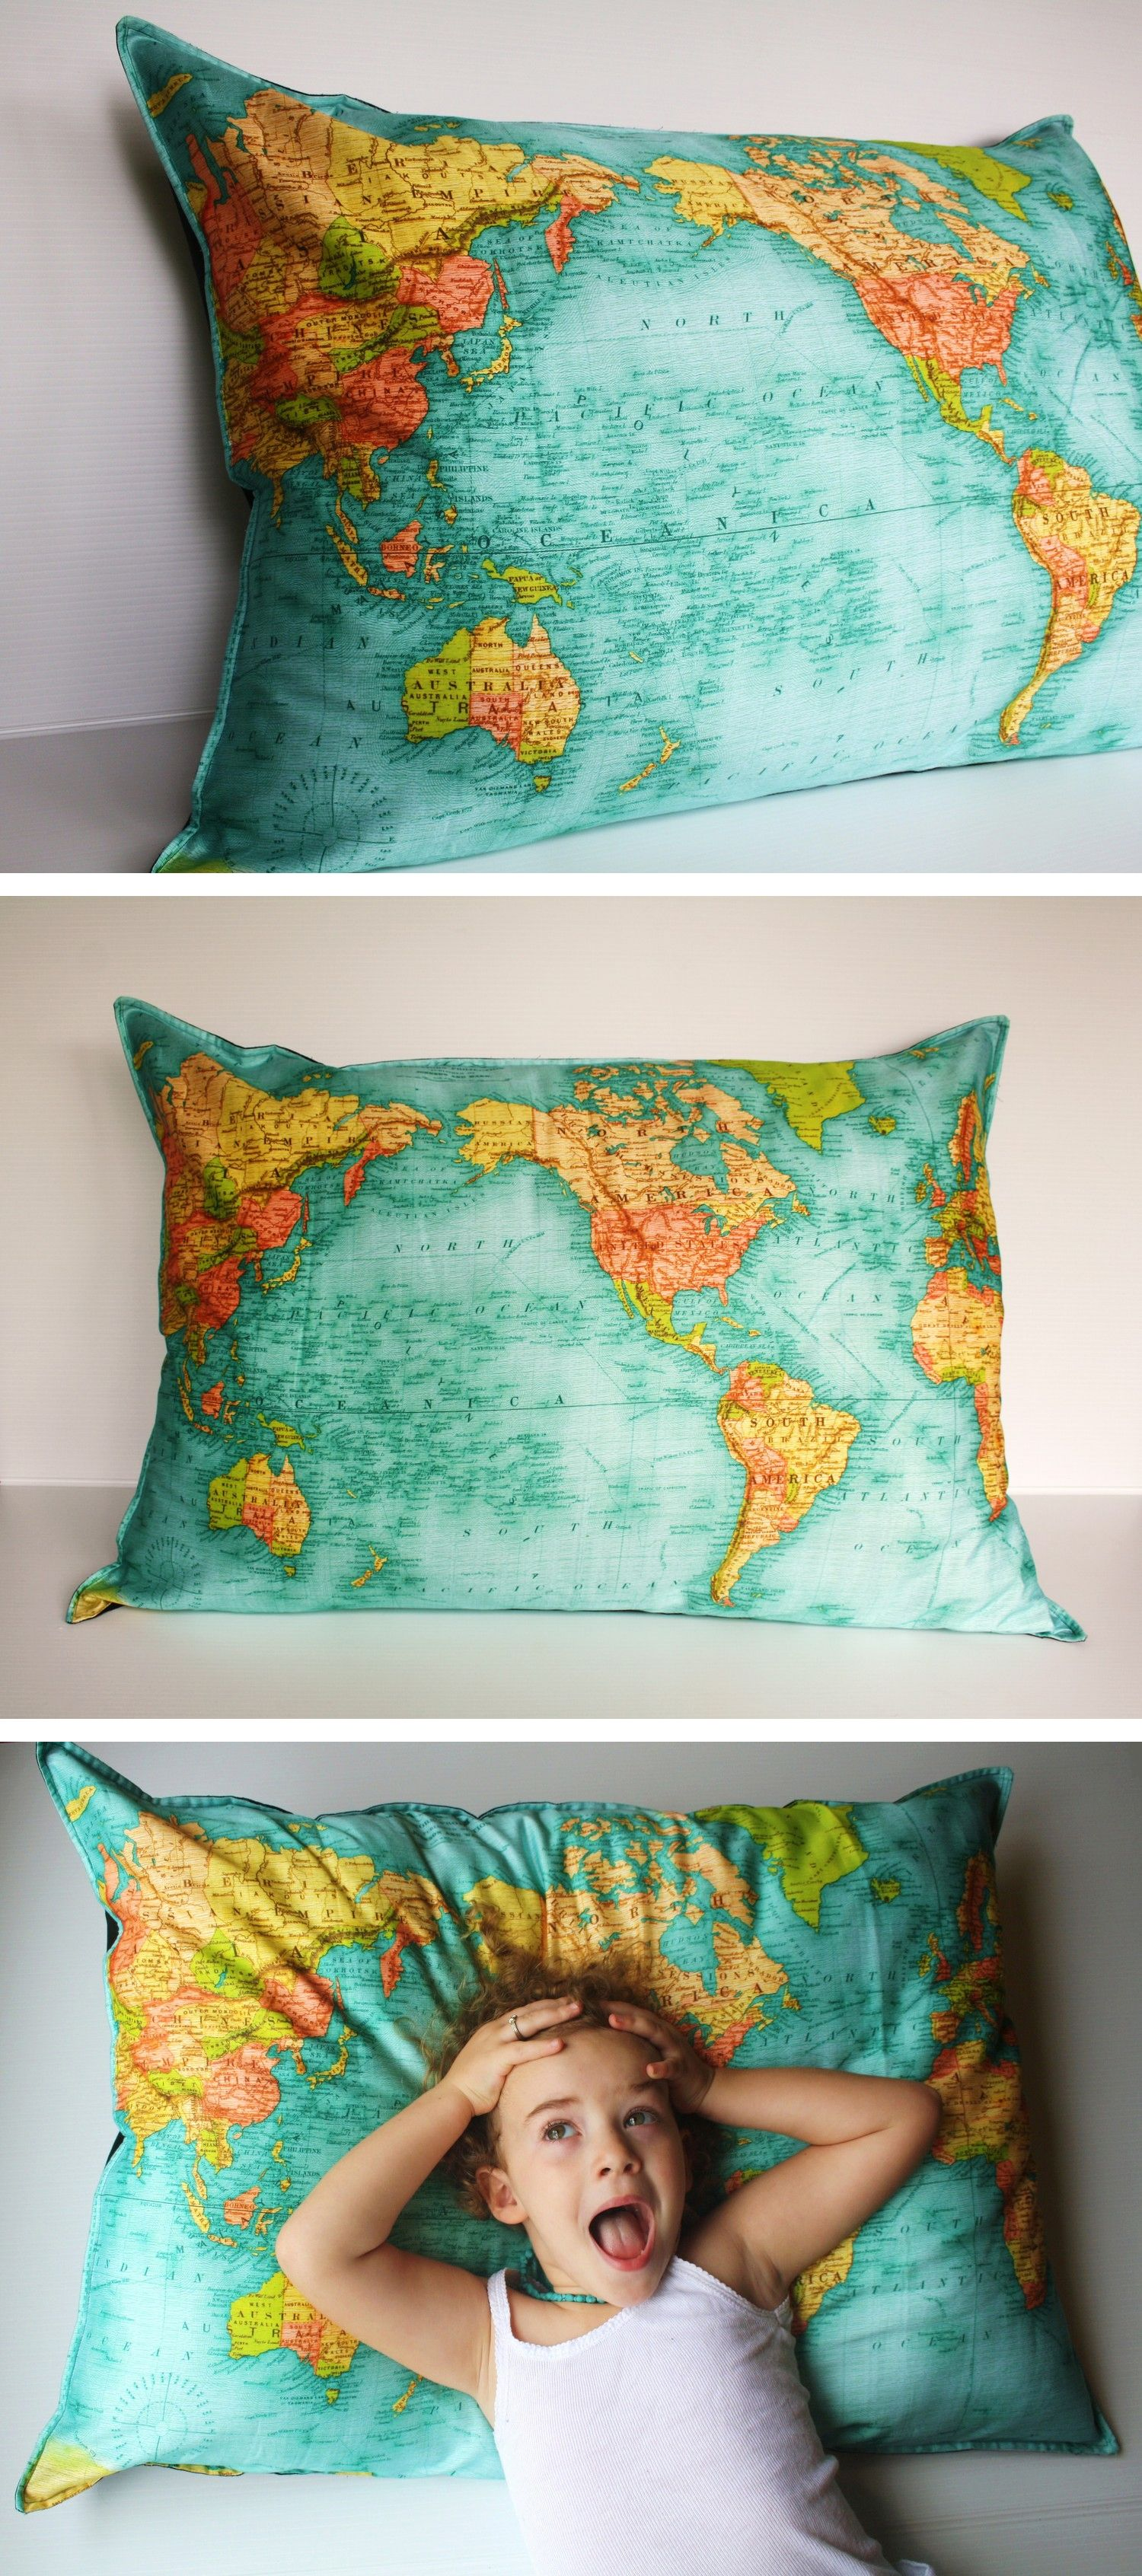 FLOOR CUSHION WORLD map cushion, giant organic cotton cushion cover, bean bag, world map cushion, pillow 86cm/34inches x 61cm/ 24 inches - made in Australia from a vintage map reproduction exclusive to My Bearded Pidgeon - this one is on my Etsy Christmas gift wishlist!